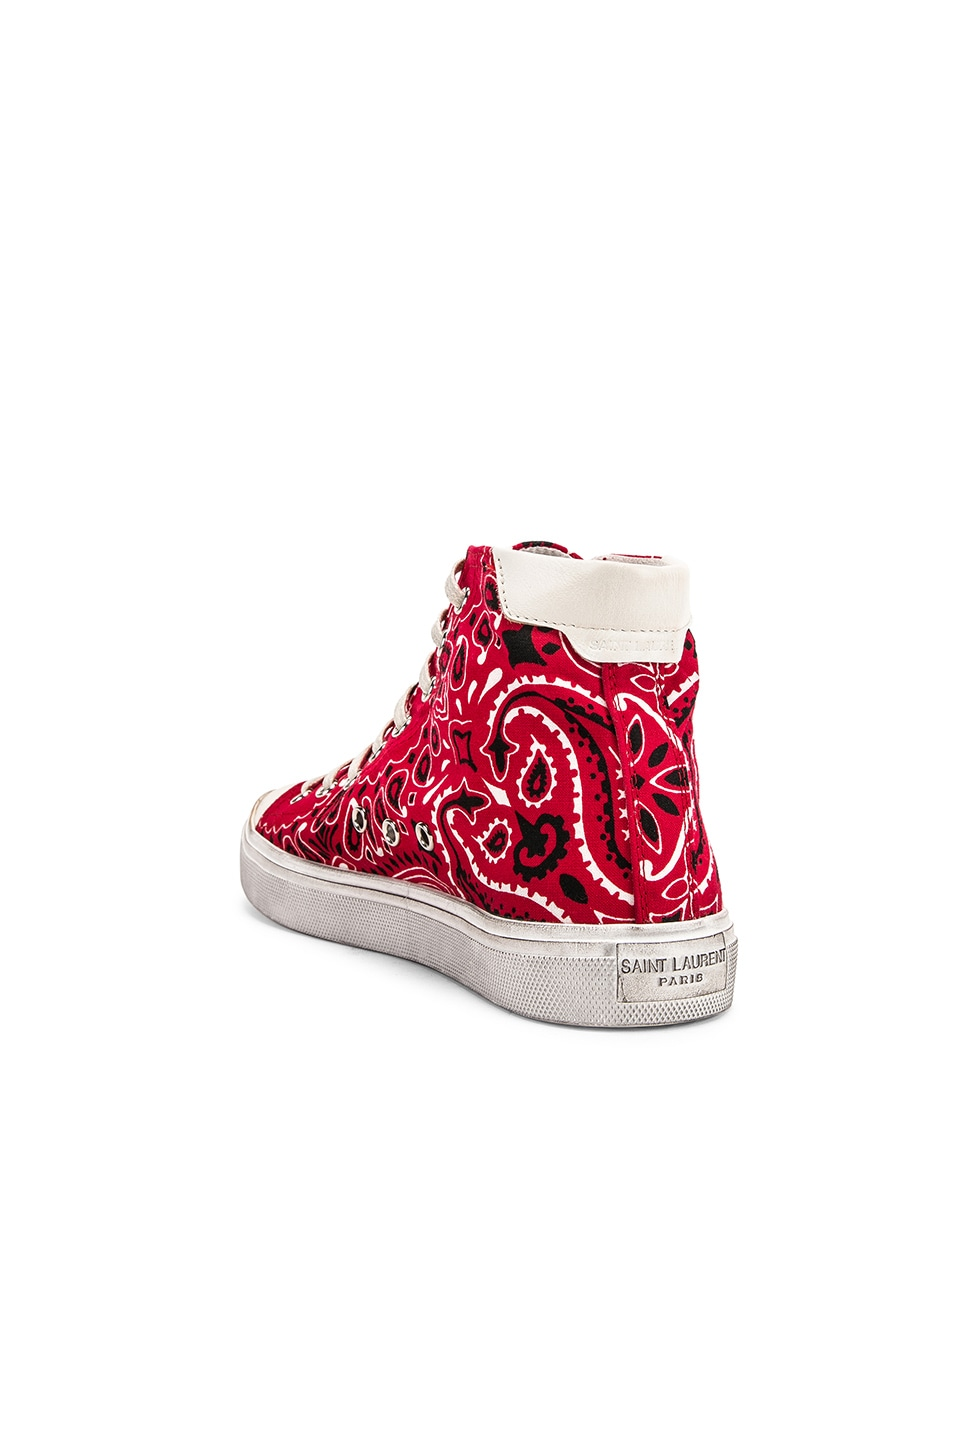 Image 3 of Saint Laurent High Top Bedford Sneakers in Red & White